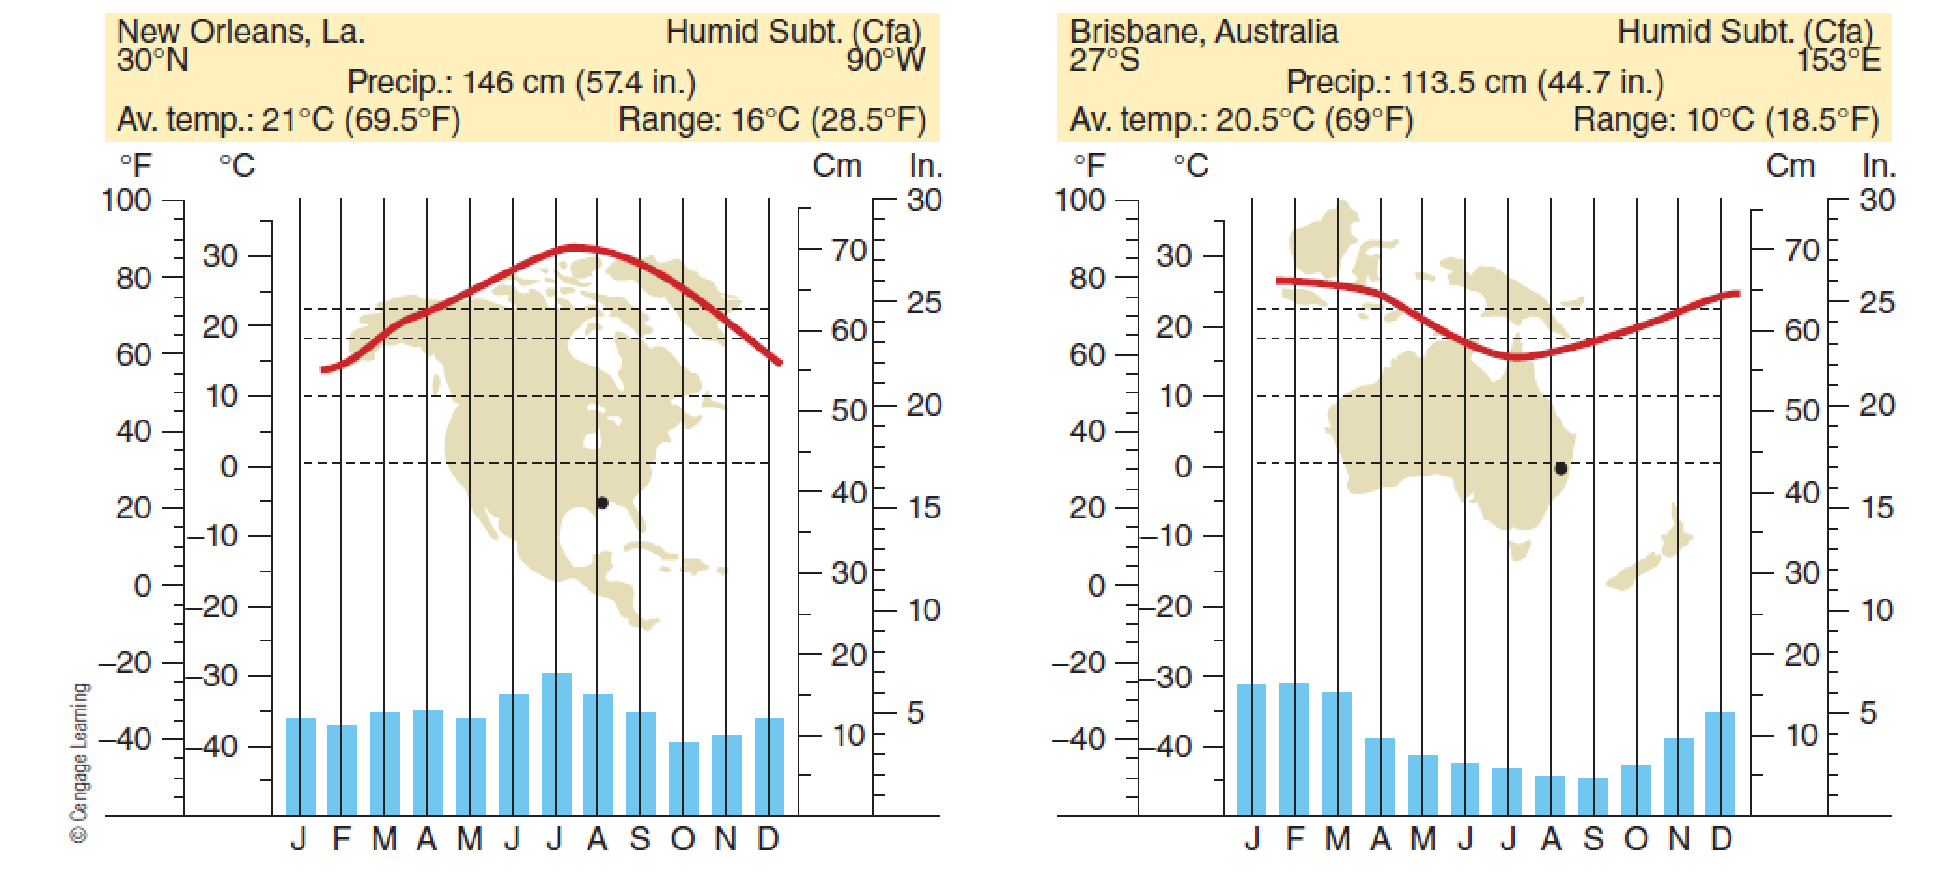 Chapter 7, Problem 26FQ, FIGURE 7.26 Climographs for humid subtropical climate stations. What hemispheric characteristics are